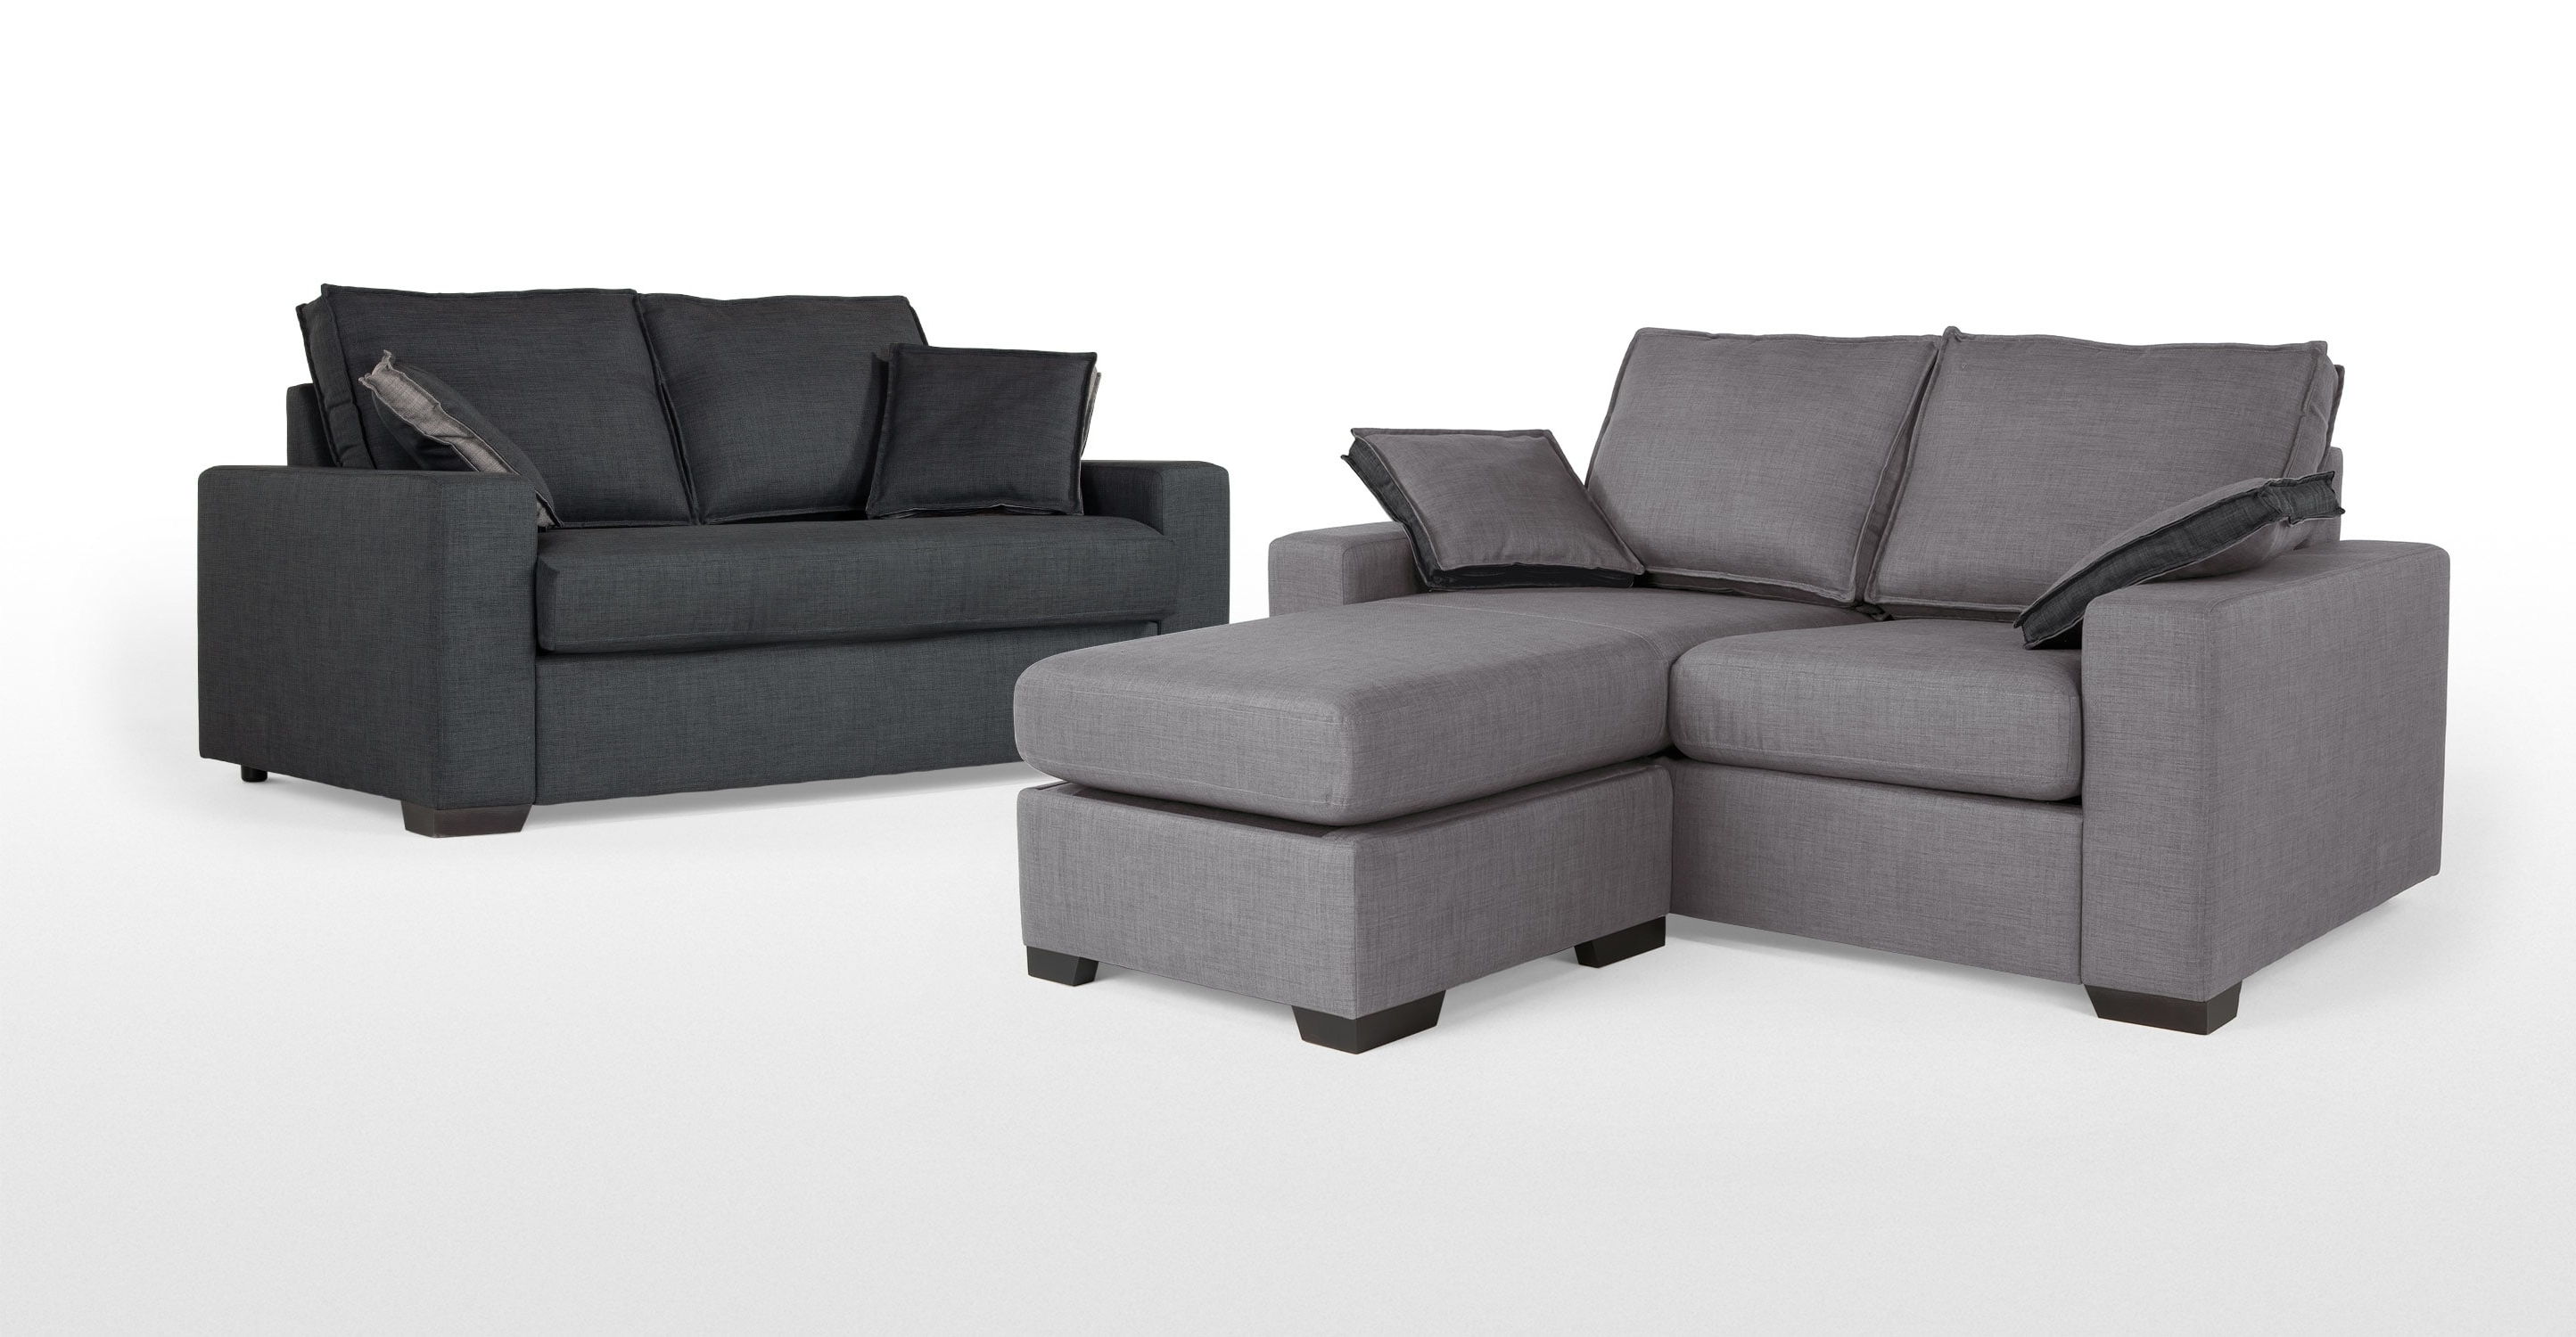 Latest Sofa Beds With Chaise For Sofas: Classic Meets Contemporary Chaise Sofa Bed For Ideal Living (View 11 of 15)